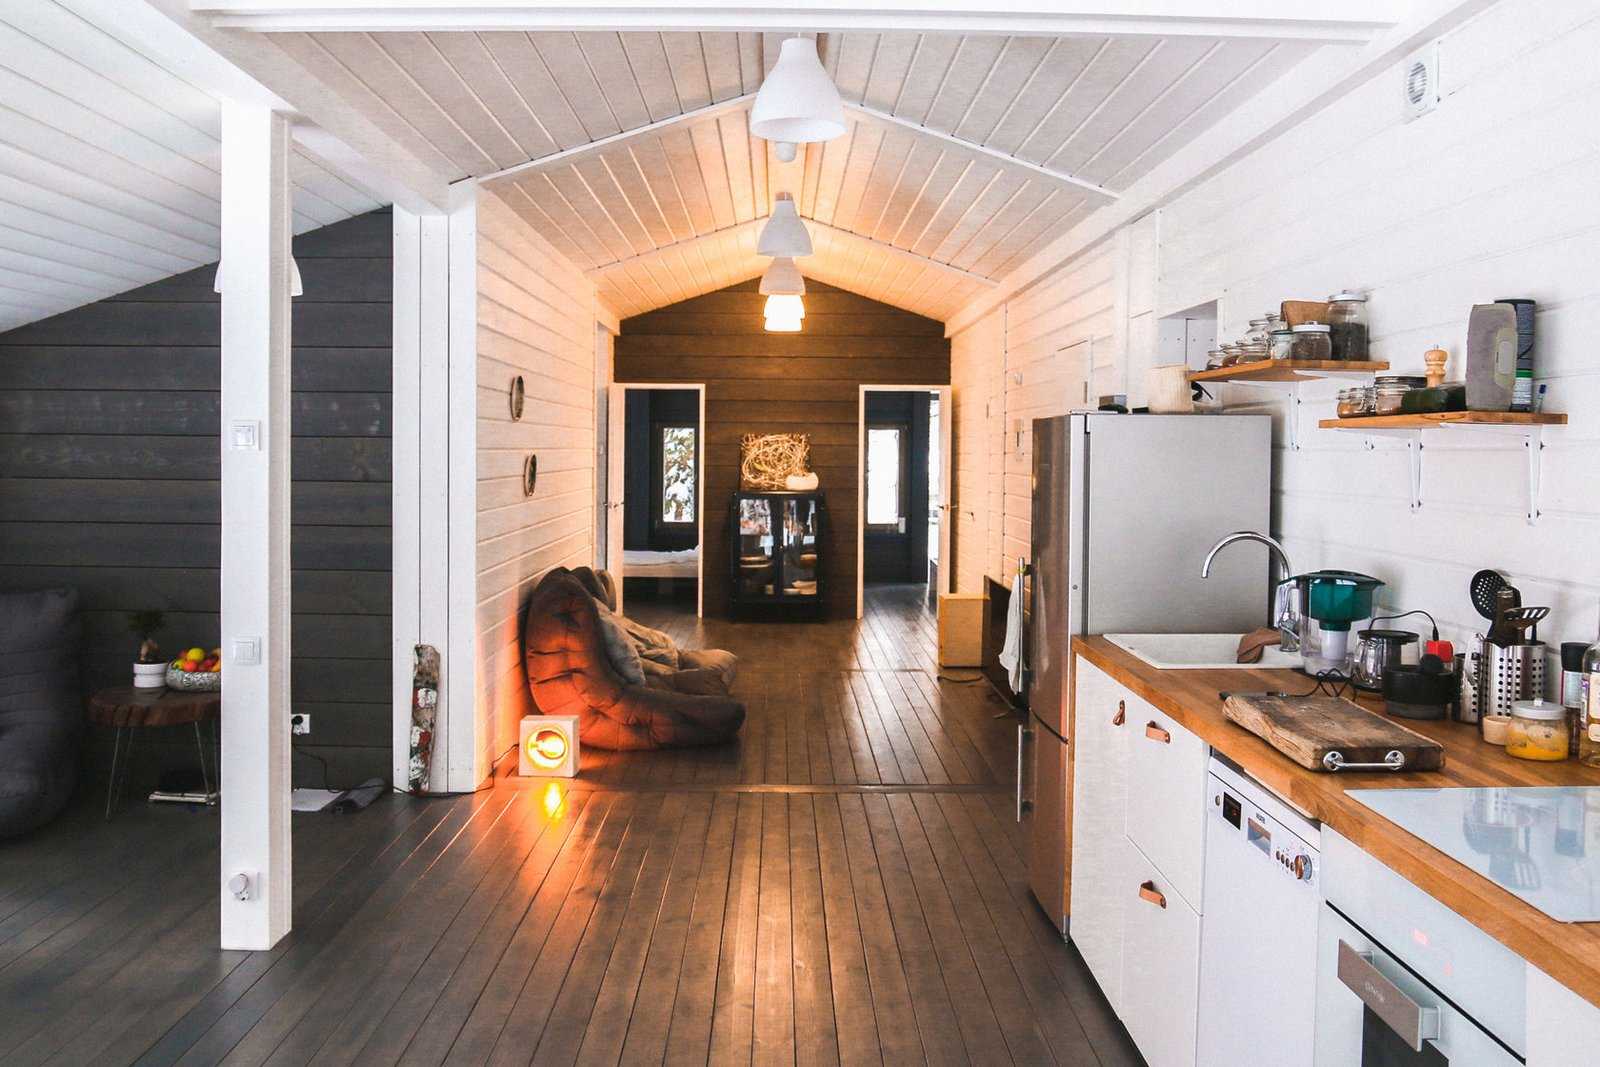 Kitchen, Wood Counter, Dishwasher, Drop In Sink, White Cabinet, Refrigerator, Ceiling Lighting, and Dark Hardwood Floor This model starts at $94,747, but you can pay for add-ons like a sauna and side terrace.  Photo 19 of 22 in DublDom Prefab Homes Can Be Built in One Day